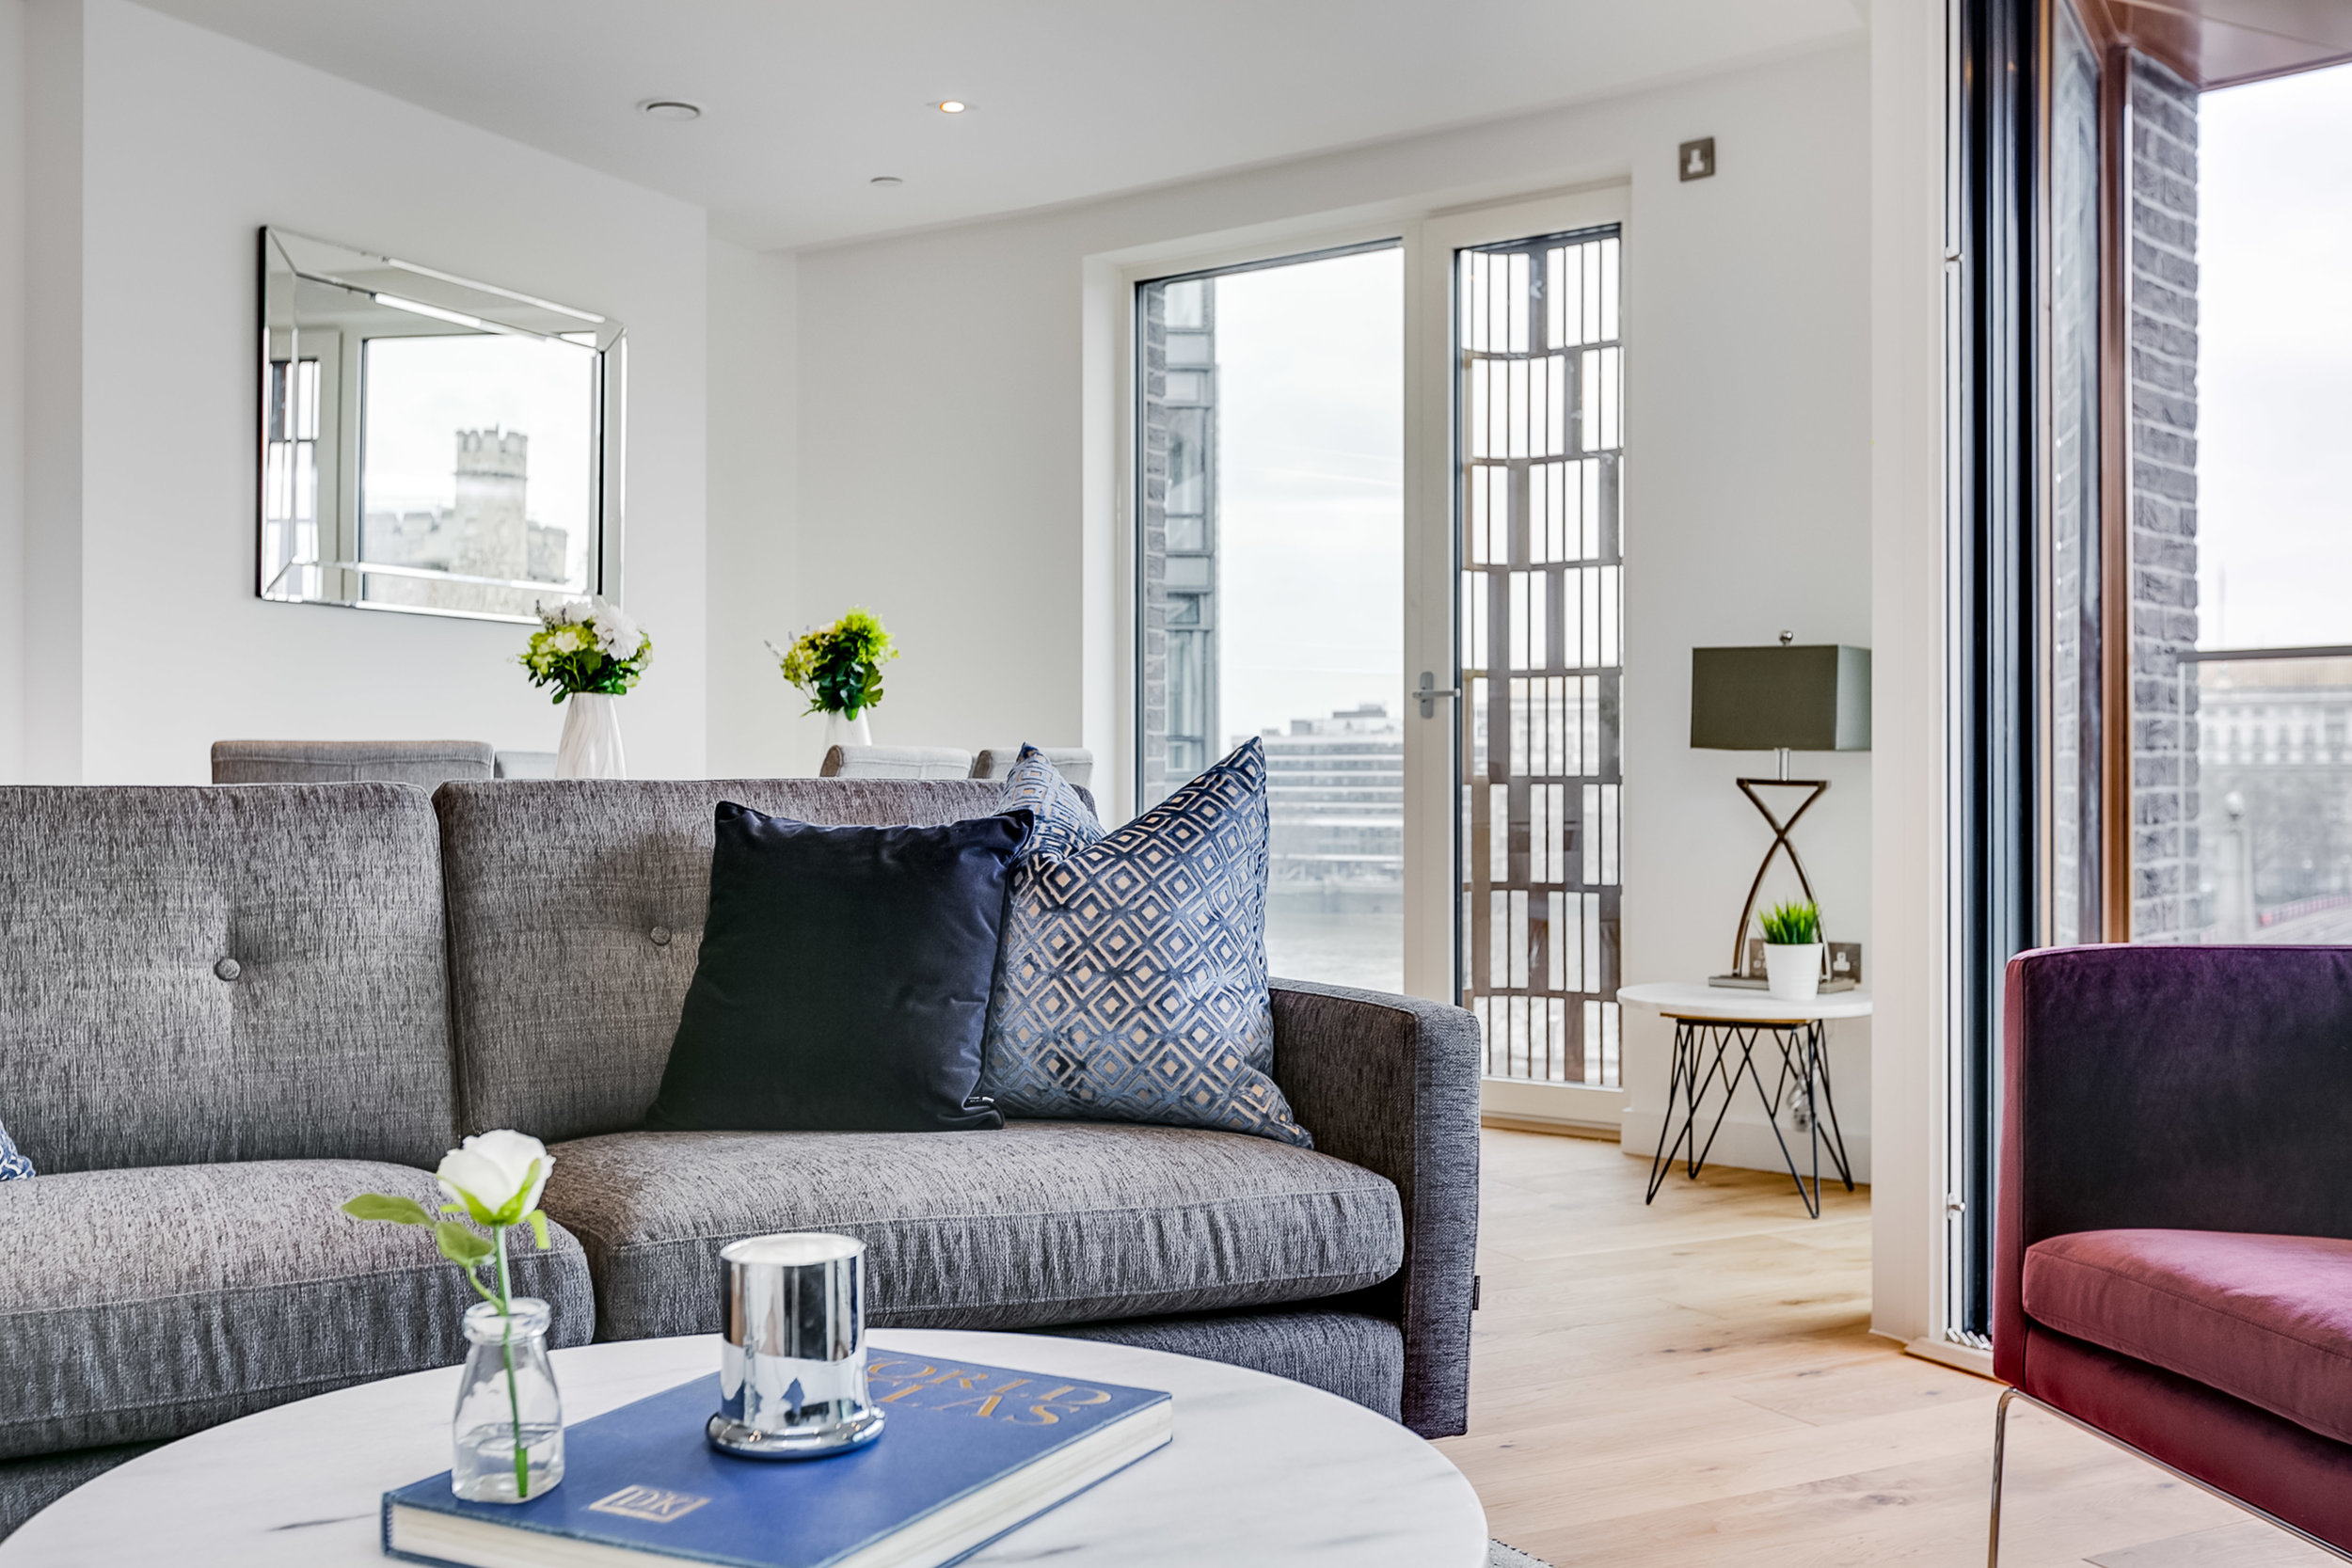 - The Portland Range presents a contemporary and cost effective solution for the buy to let investor. This range is aimed at properties with mid-range rental value. Our designer select certain pieces that will maintain a stylish look for today's competitive rental market.Our Portland Range is perfectly suited for smaller rental apartments, with each product being carefully chosen to increase the potential of your property.The range is available in a choice of colour schemes, giving each property unique character.